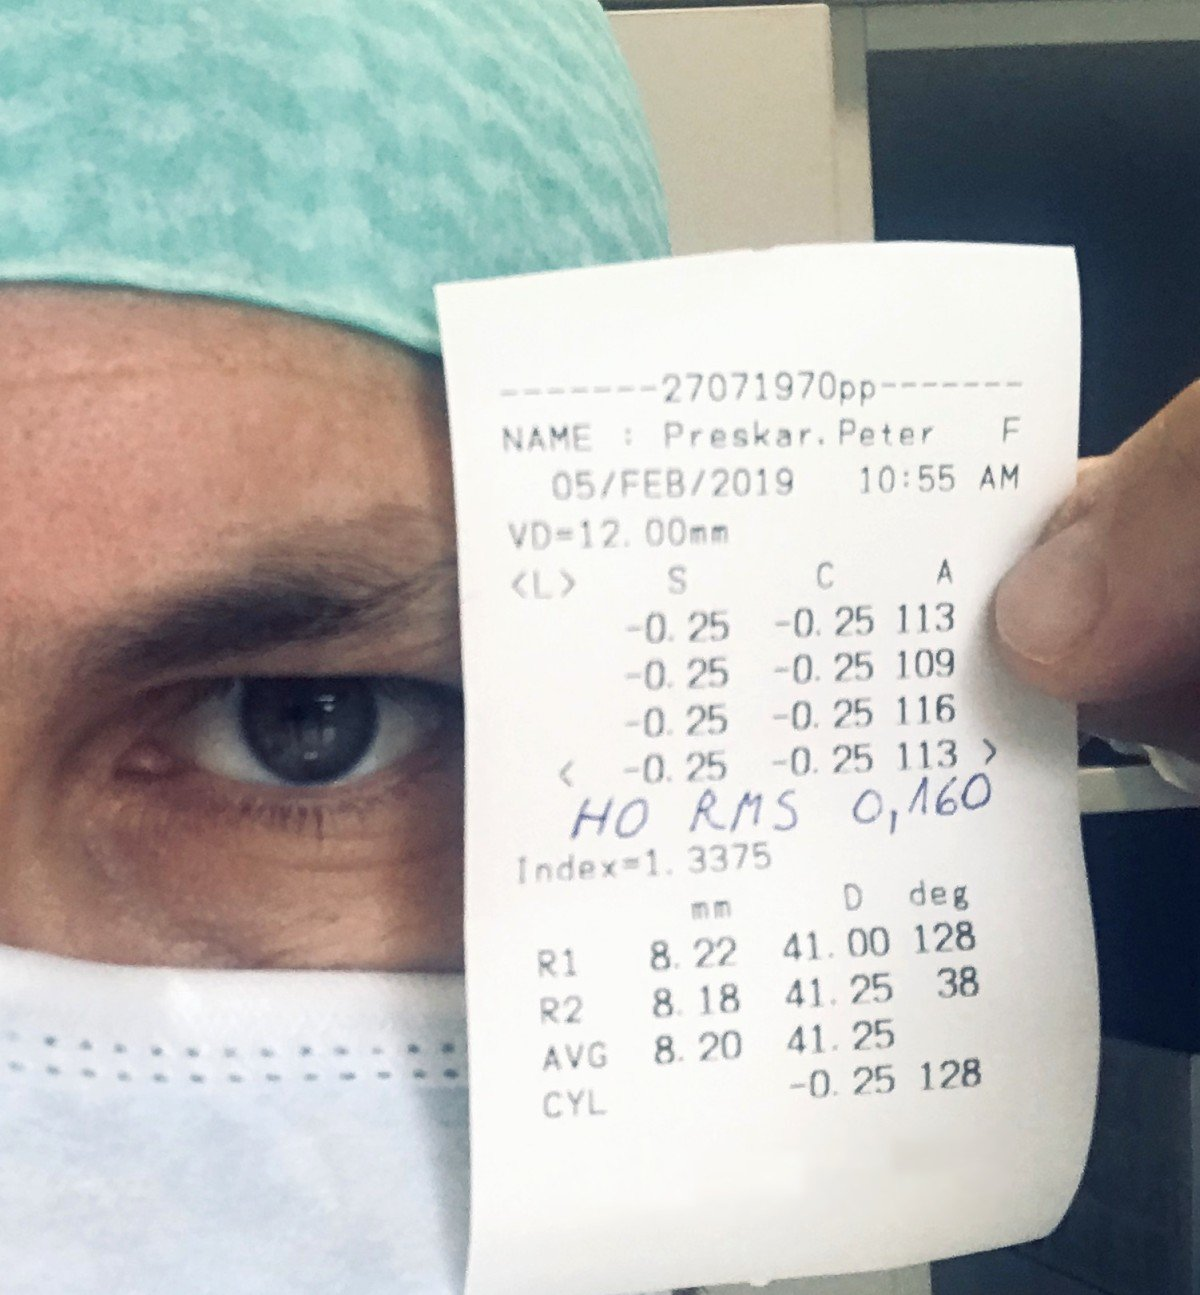 Dr. Peter Preskar with the result of his AMARIS eye laser treatment